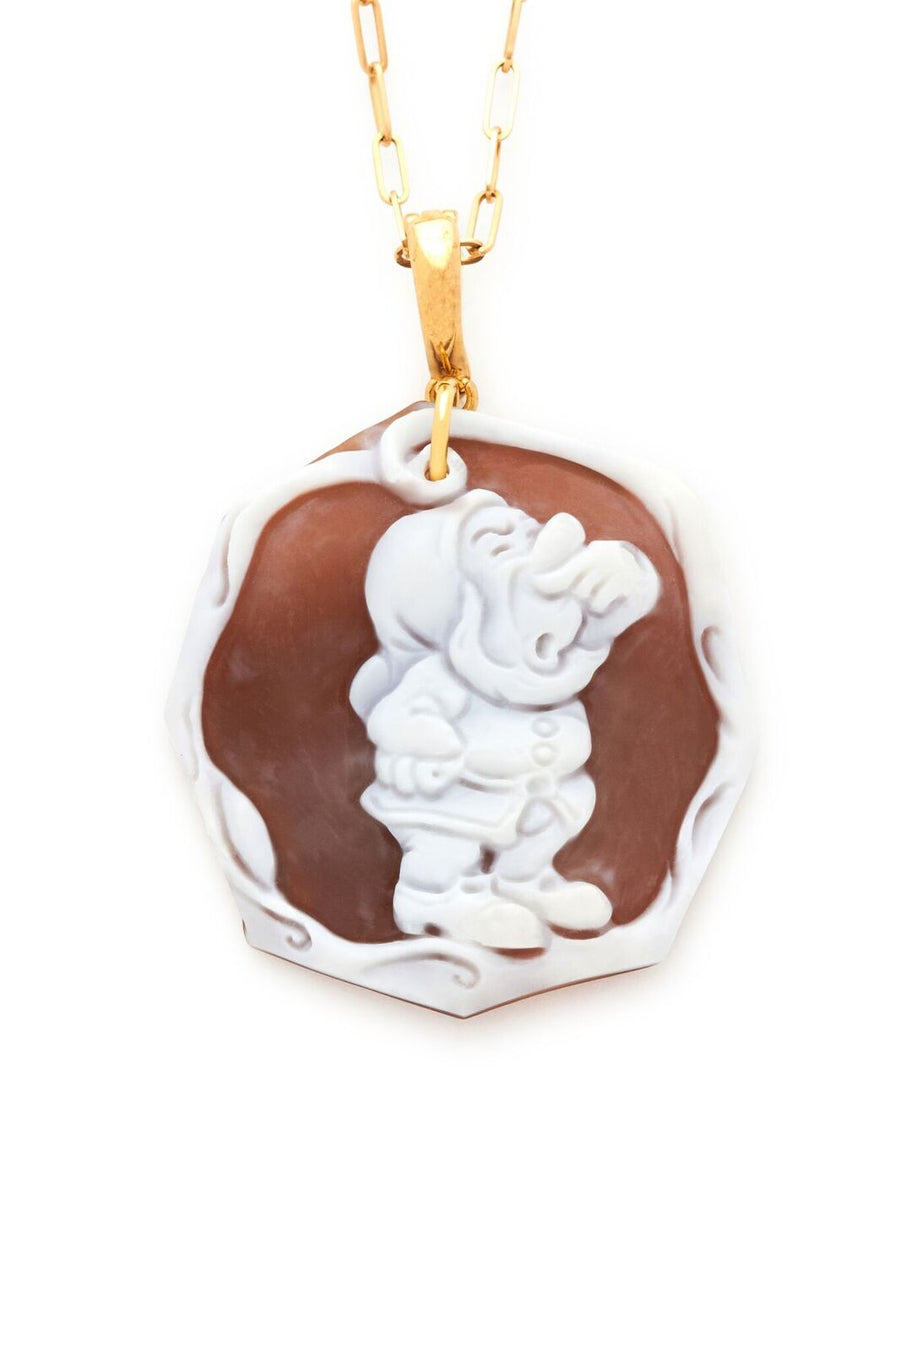 Sneezy of the Seven Dwarfs Cameo Pendant